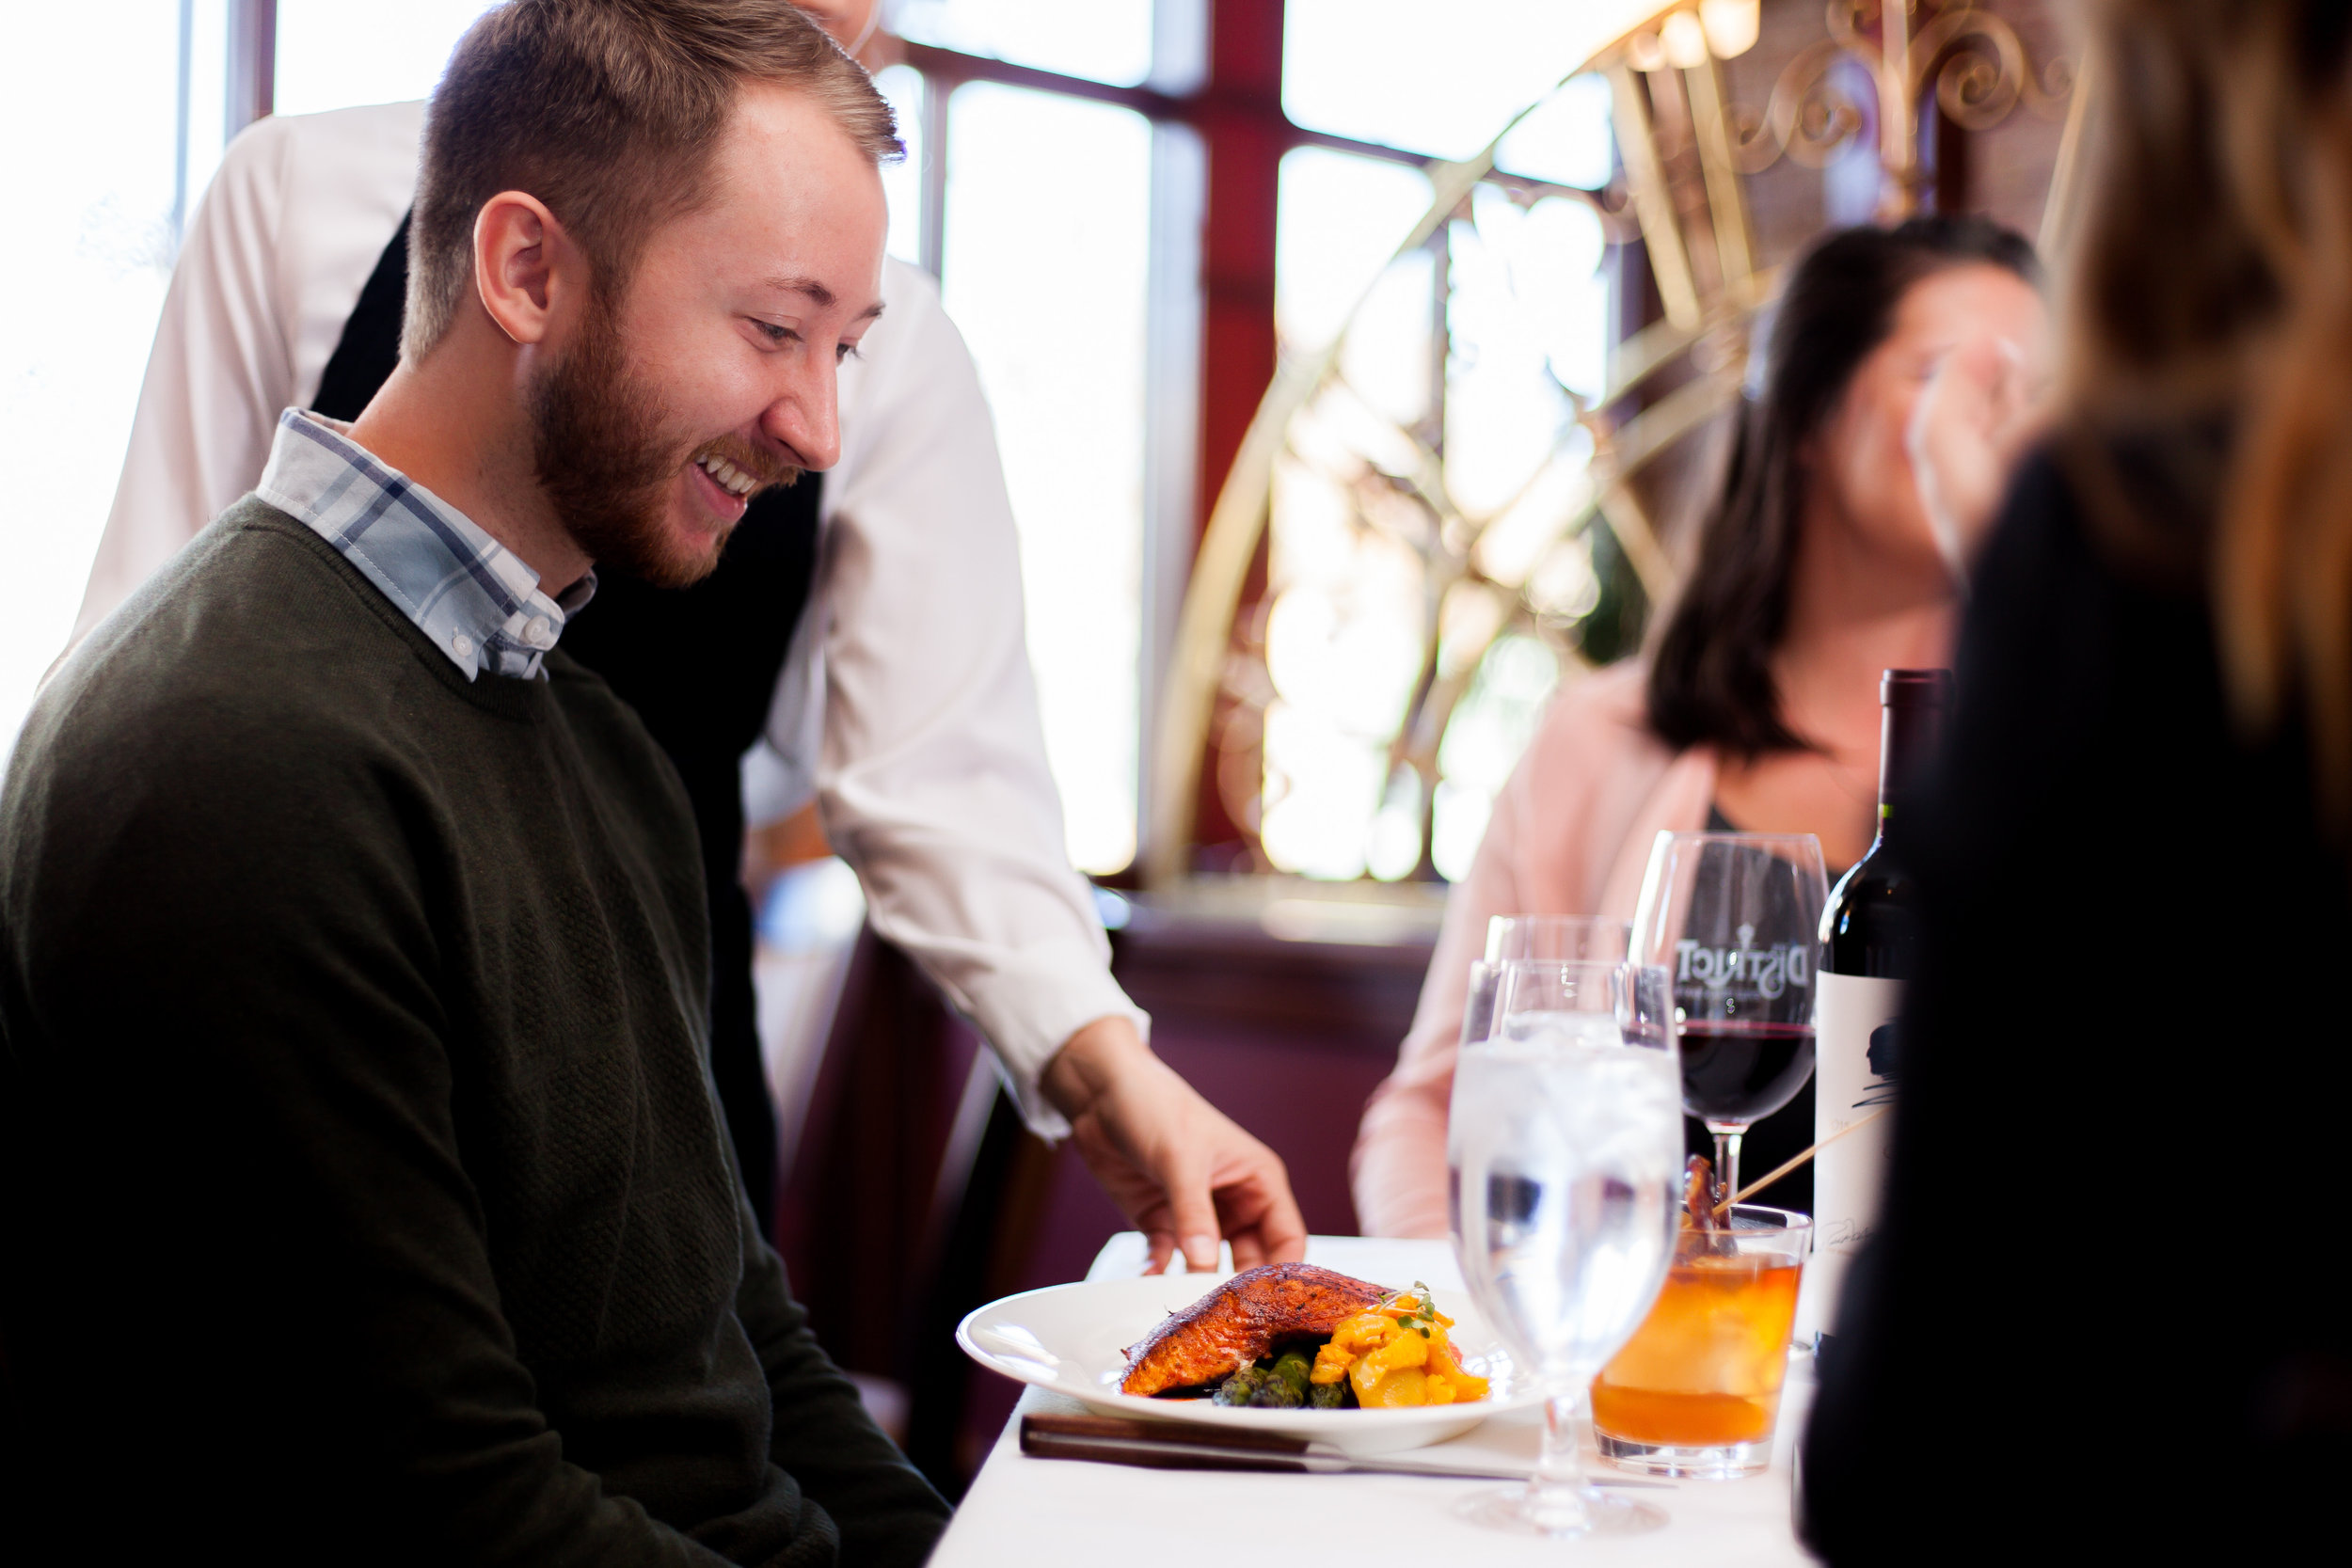 Male customer being served a fish dish by a female server.